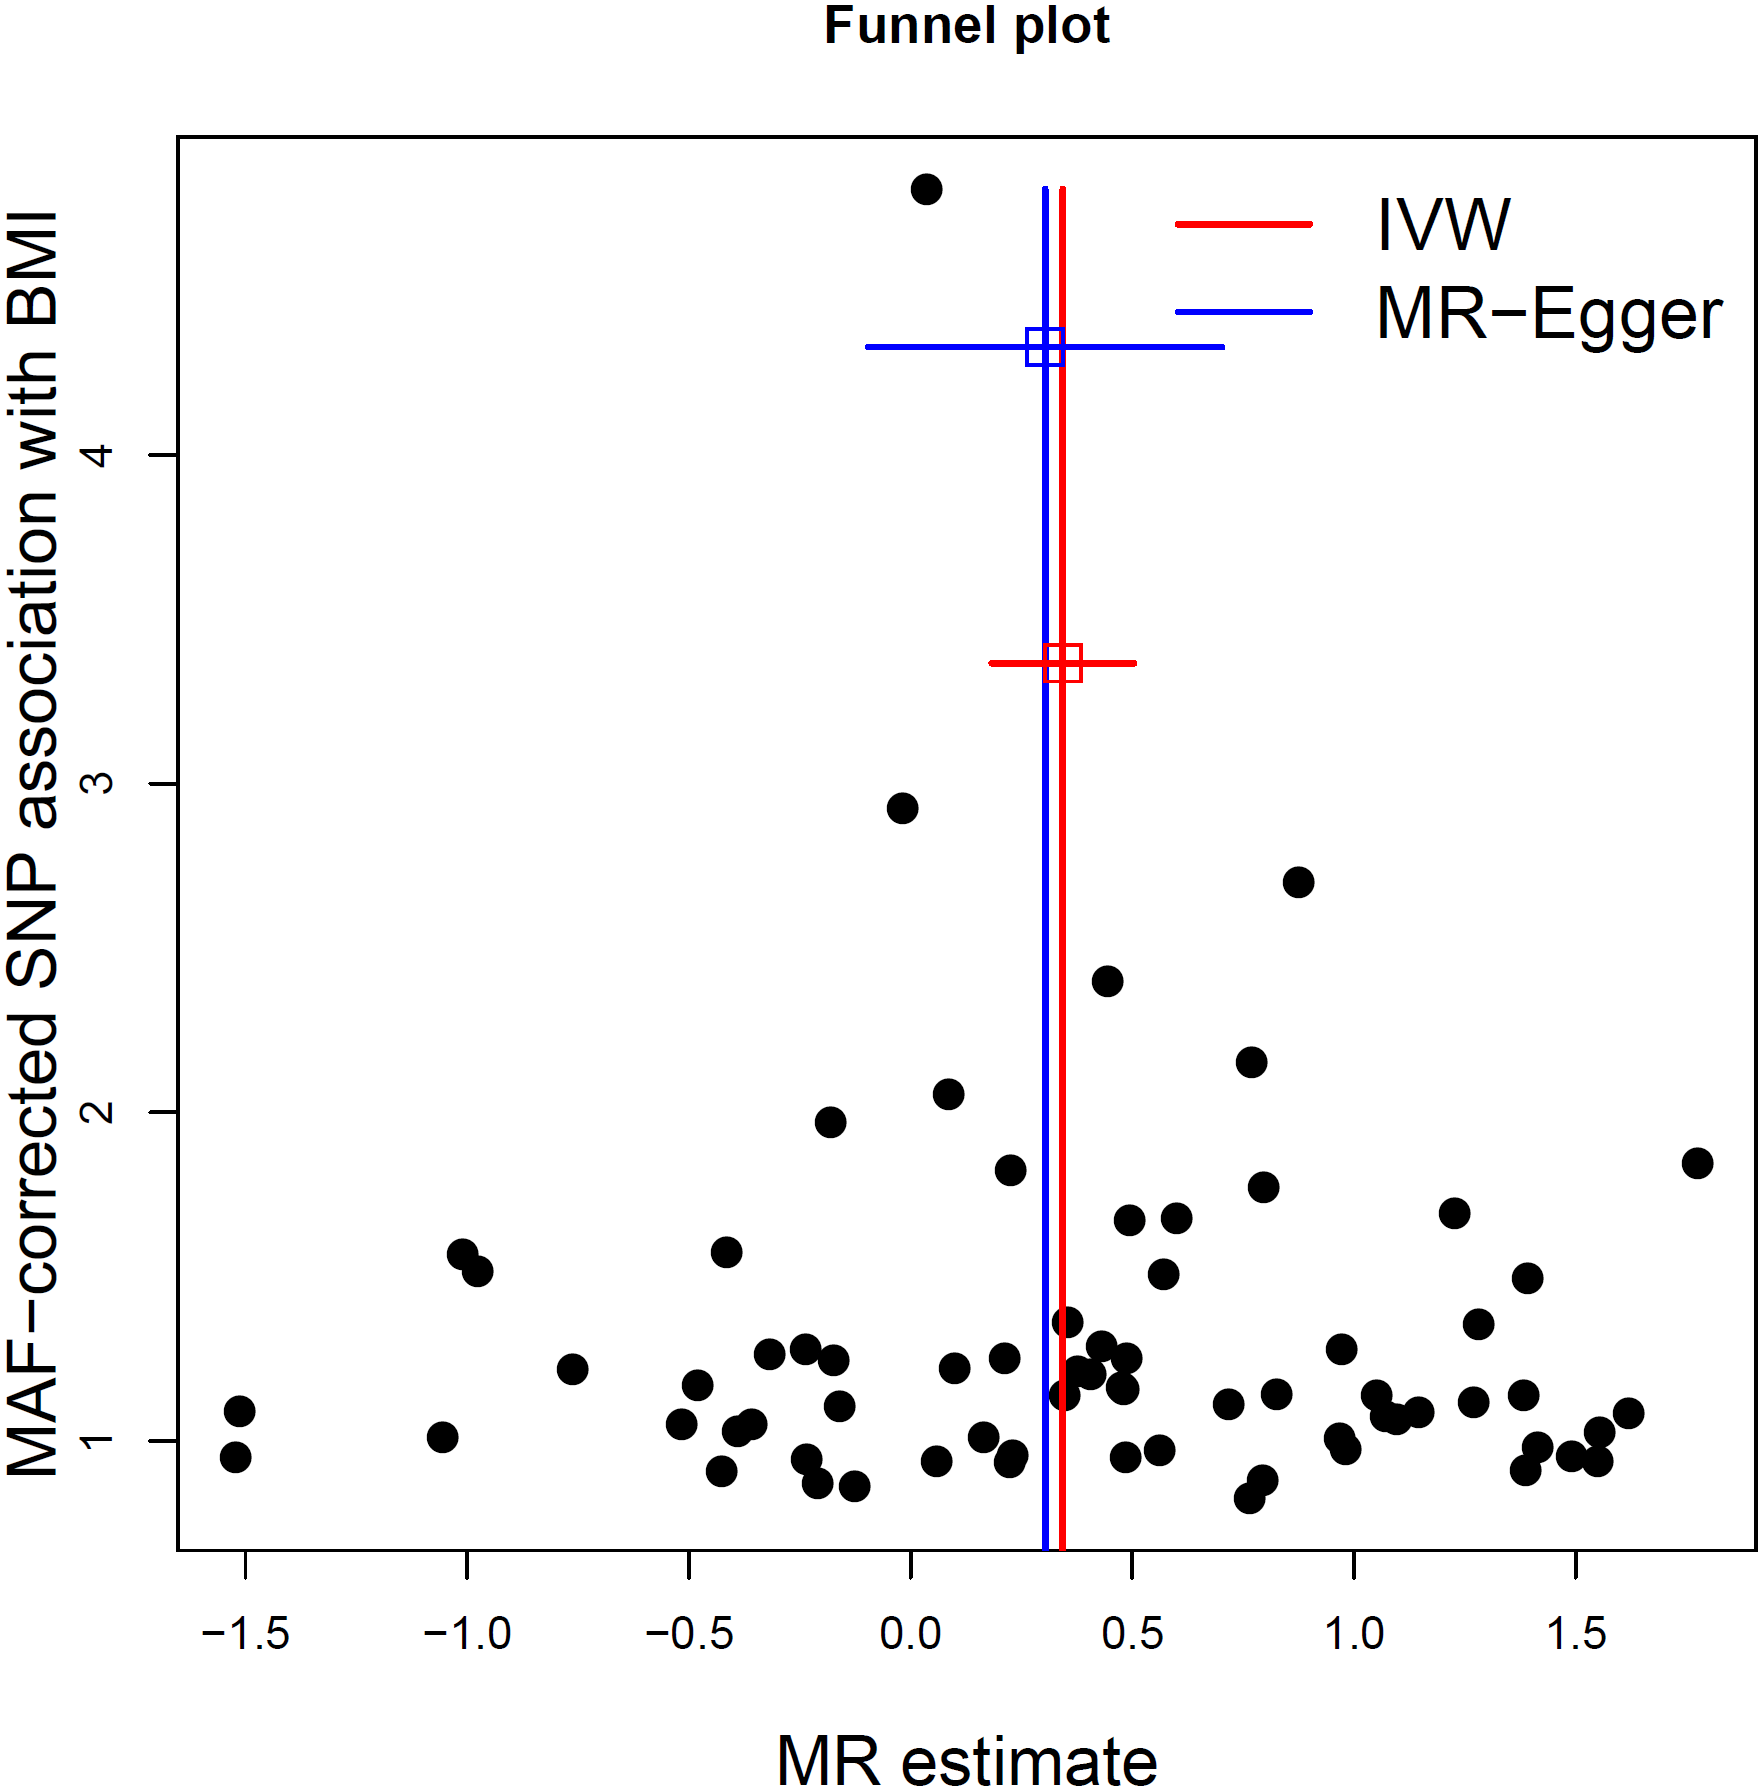 MR-Egger regression funnel plot for BMI on MS analysis.